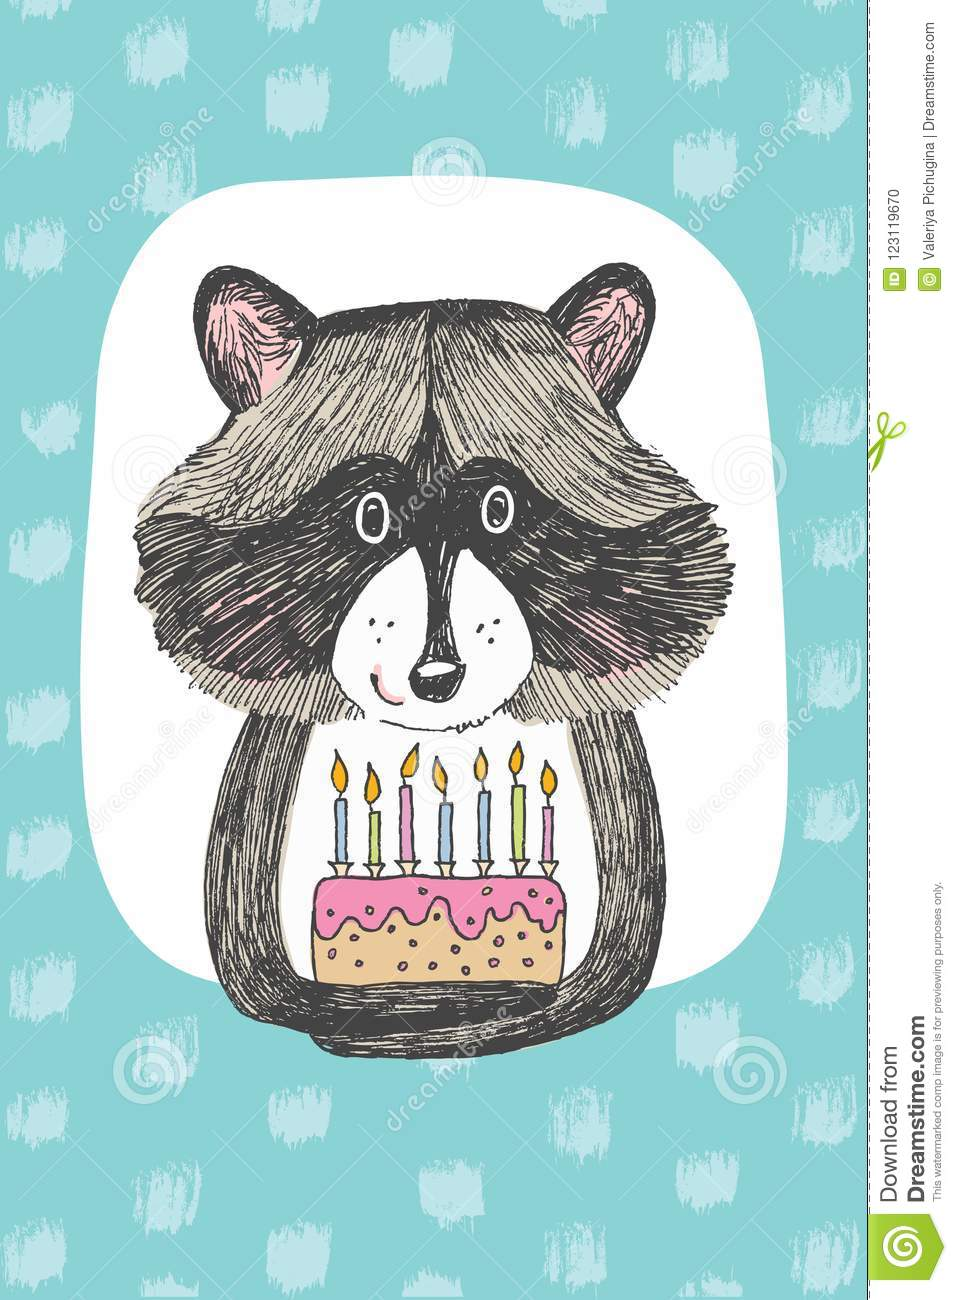 Greeting card design with cute raccoon keeps a cake happy birthday greeting card design with cute raccoon keeps a cake happy birthday invitation template with funny filmwisefo